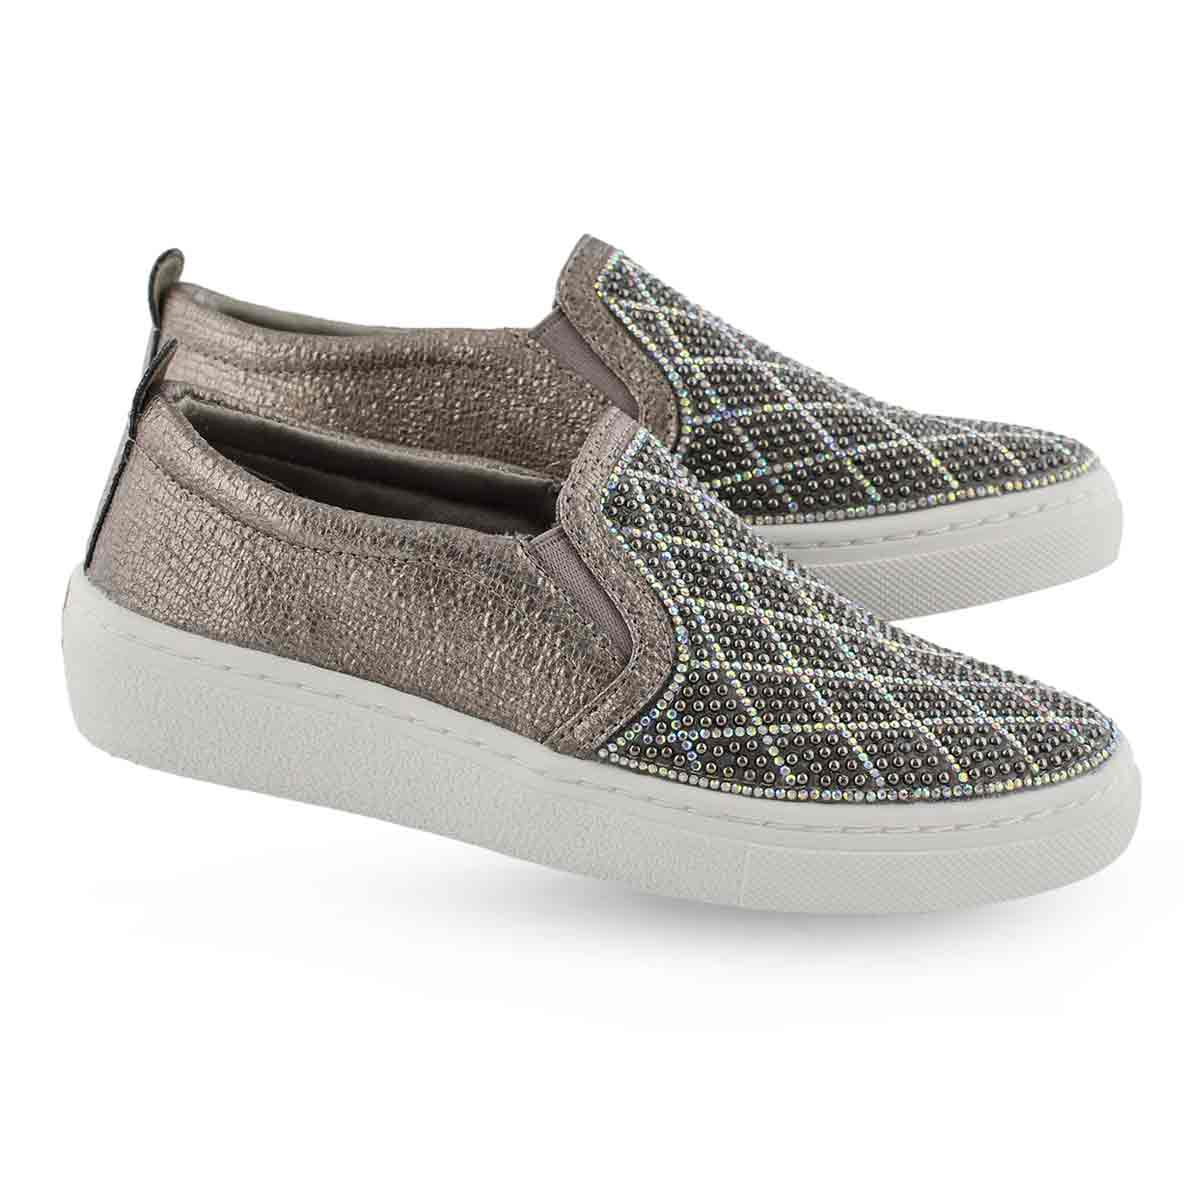 Grls Goldie Diamond Darling pwtr slip on